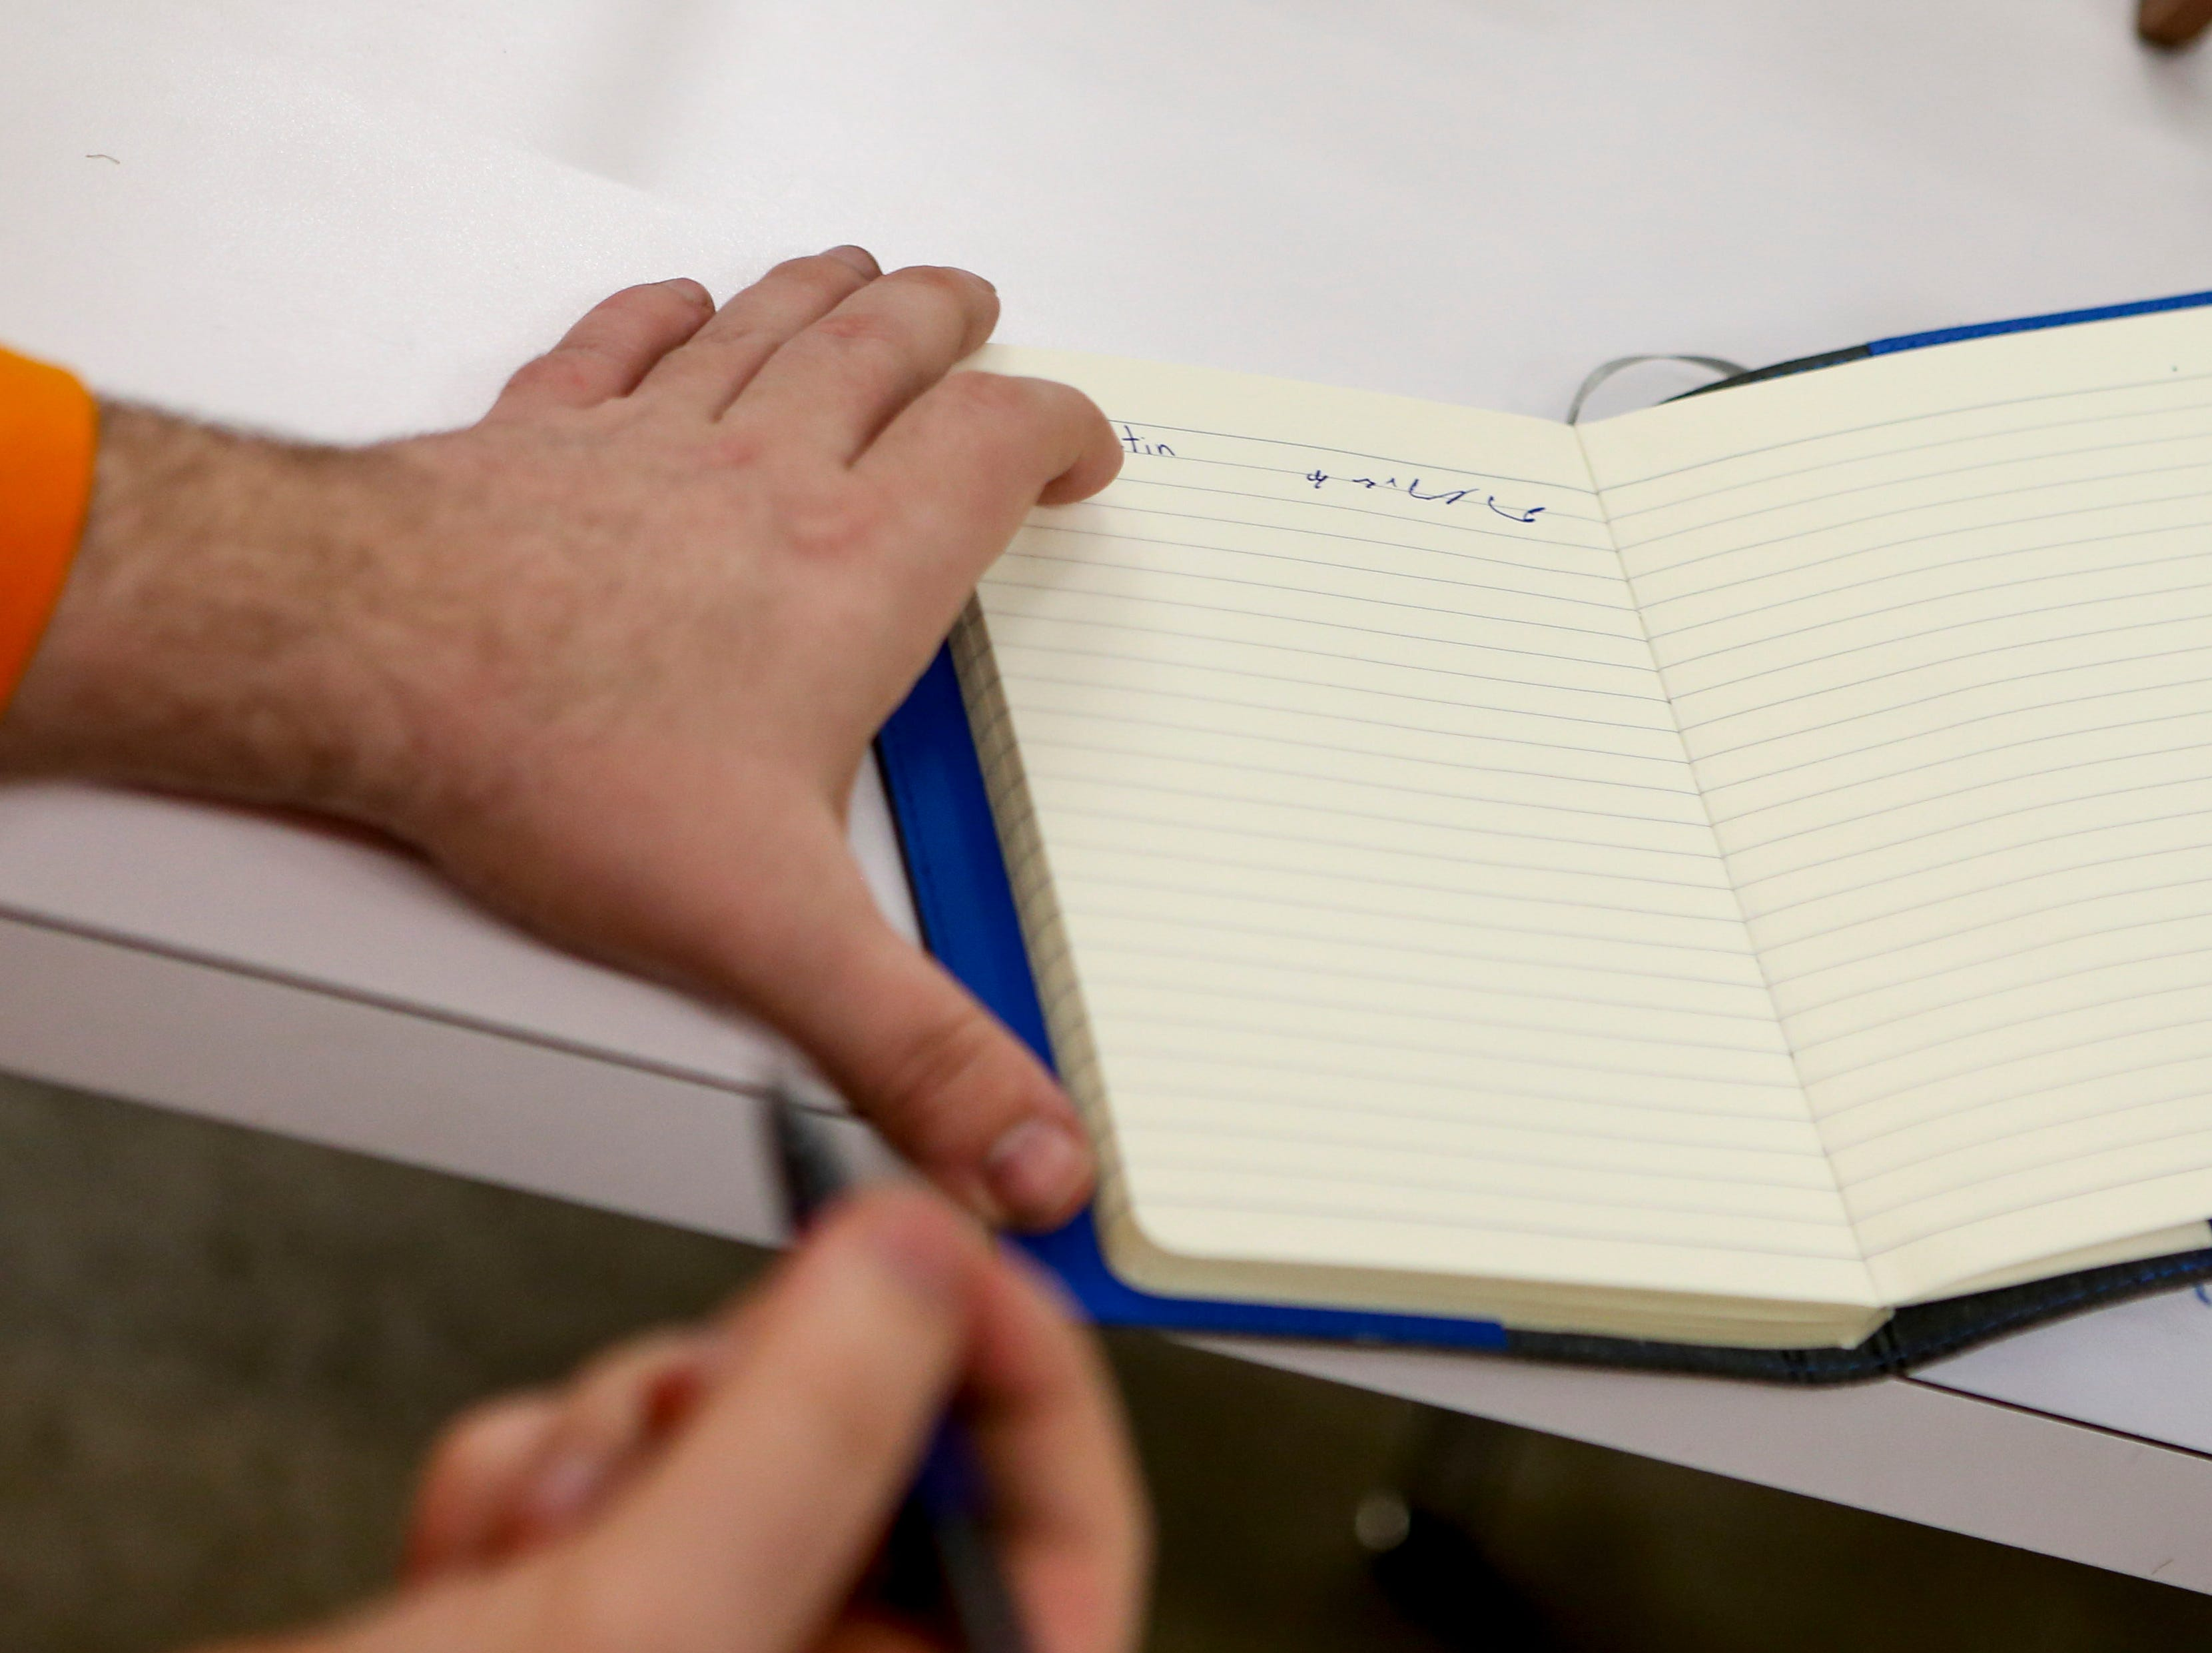 Justin Milford proudly displays his writing in a notebook after classes at McNairy Developmental Services in Selmer, Tenn., on Thursday, Feb. 21, 2019.